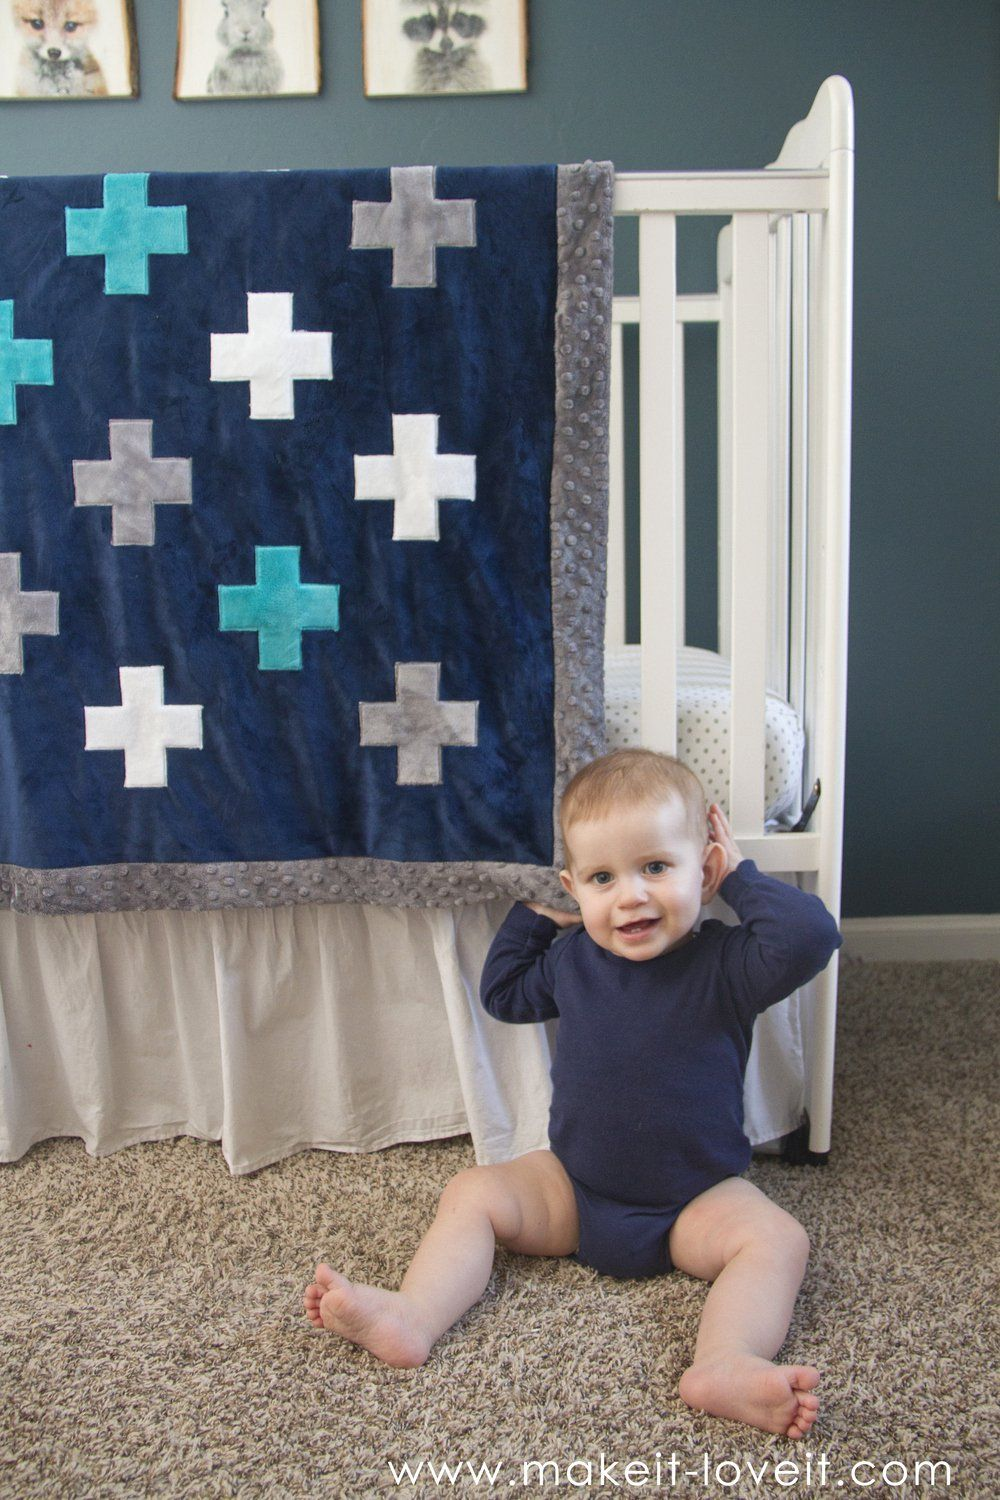 Selfbinding minky blanketwith a plussign applique blanket